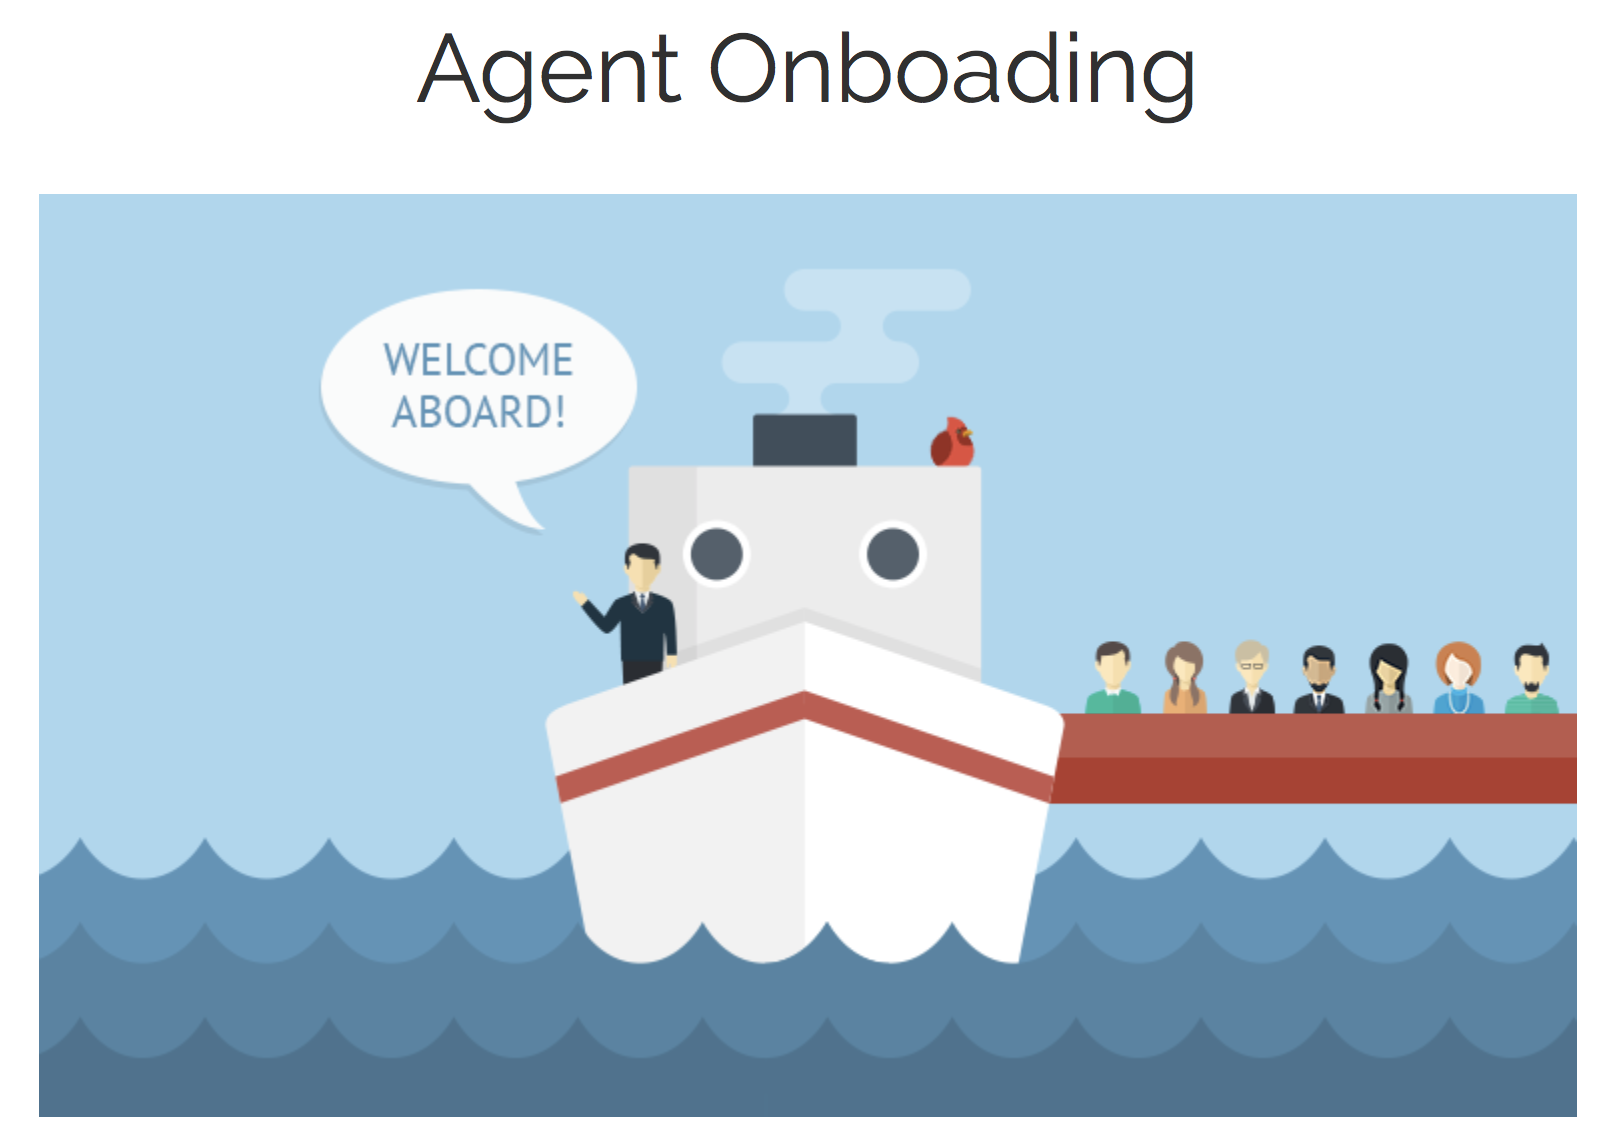 Agent Onboarding Training Site - Refresh yourself on all the tools and technology here.